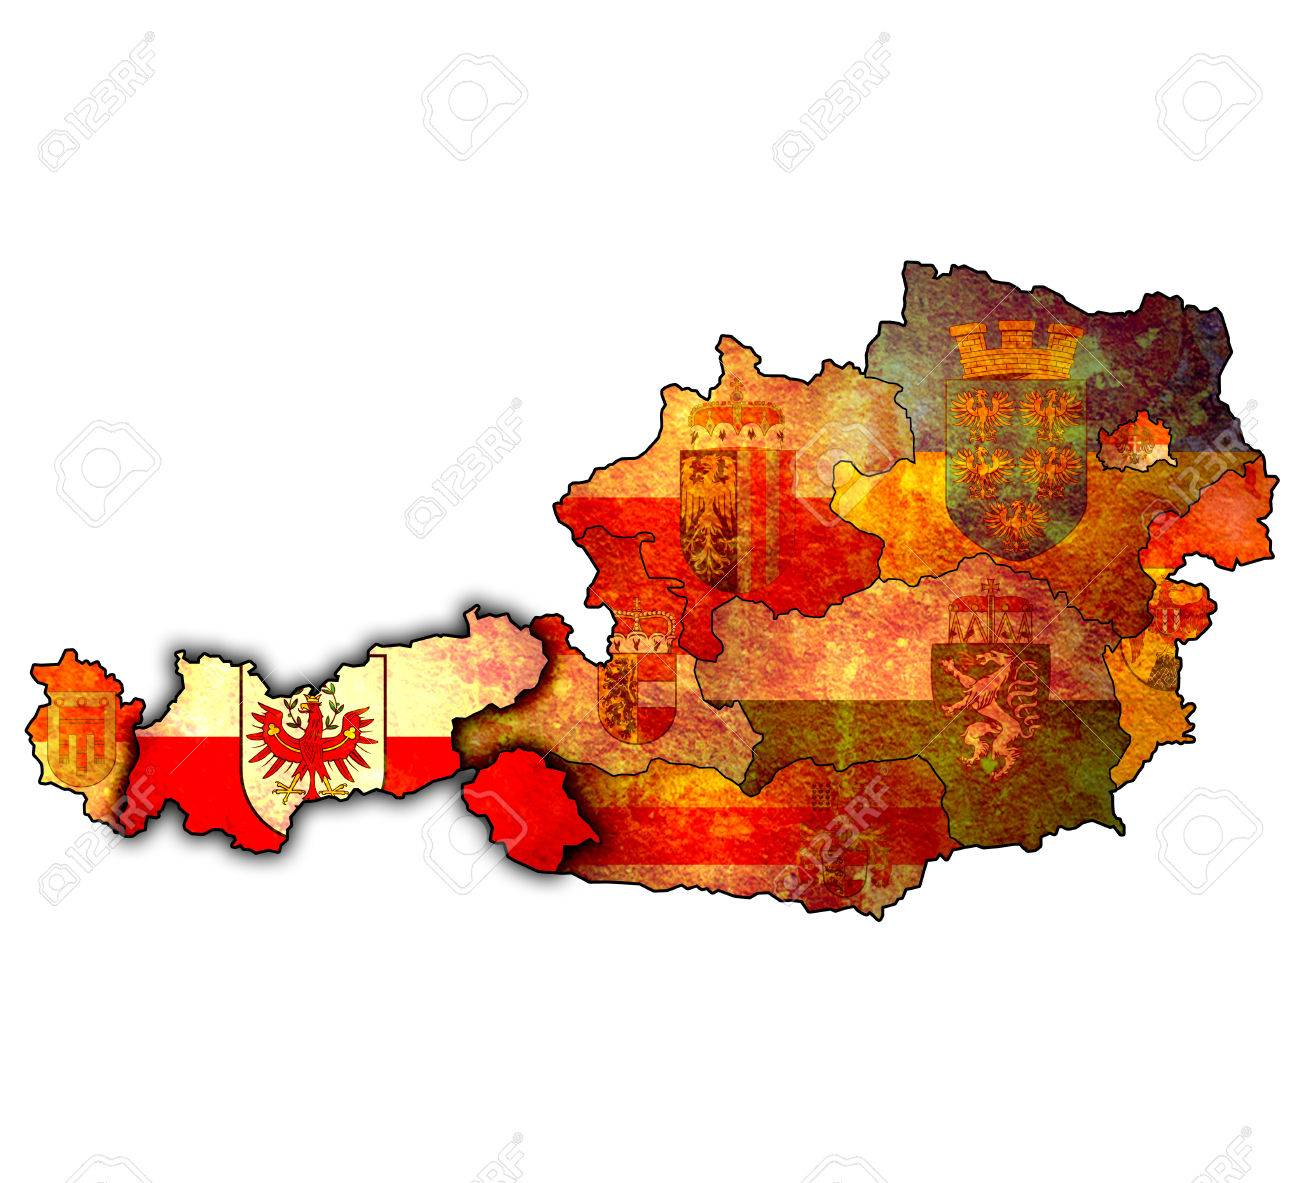 Tirol Flag On Map Of Austria With Administrative Divisions Stock